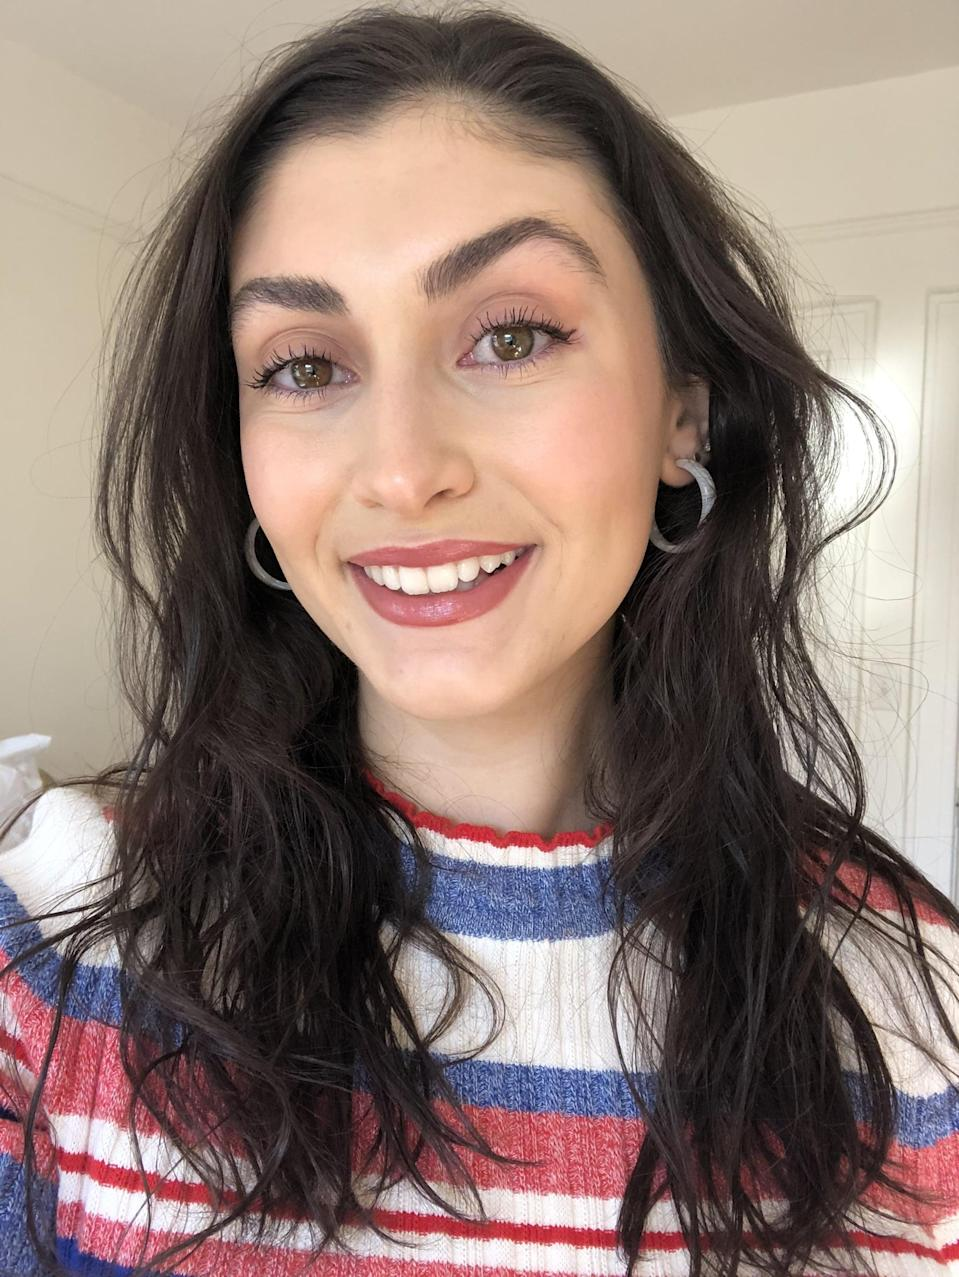 """<p>""""I like my foundation coverage to be somewhere between lightweight and medium and I want it to blur any imperfections and breakouts I have while still looking natural. It's a tall order, I know, but a girl can dream. When I applied the <span>Huda Beauty #FauxFilter Skin Finish Foundation Stick</span> ($39) in Toasted Coconut 240N, I immediately noticed how smooth it went onto my skin. My previous notion of stick foundations was that they can be drying and hard to blend, but that couldn't be farther from the truth about this one. I ended up blending in the first layer of foundation with a densely packed buffing brush and then adding a tad more to cover my chin area. The formula melted into my skin and felt soft - almost as if I wasn't wearing anything on it. I've now used it every day since I got my hands on it with no plan on stopping anytime soon."""" - Jessica Harrington, associate editor, Beauty</p> <p>If you want to read more, here is the <a href=""""https://www.popsugar.com/beauty/huda-beauty-fauxfilter-skin-finish-foundation-stick-review-47867899"""" class=""""link rapid-noclick-resp"""" rel=""""nofollow noopener"""" target=""""_blank"""" data-ylk=""""slk:complete Huda Beauty #FauxFilter Skin Finish Foundation Stick review"""">complete Huda Beauty #FauxFilter Skin Finish Foundation Stick review</a>.</p>"""